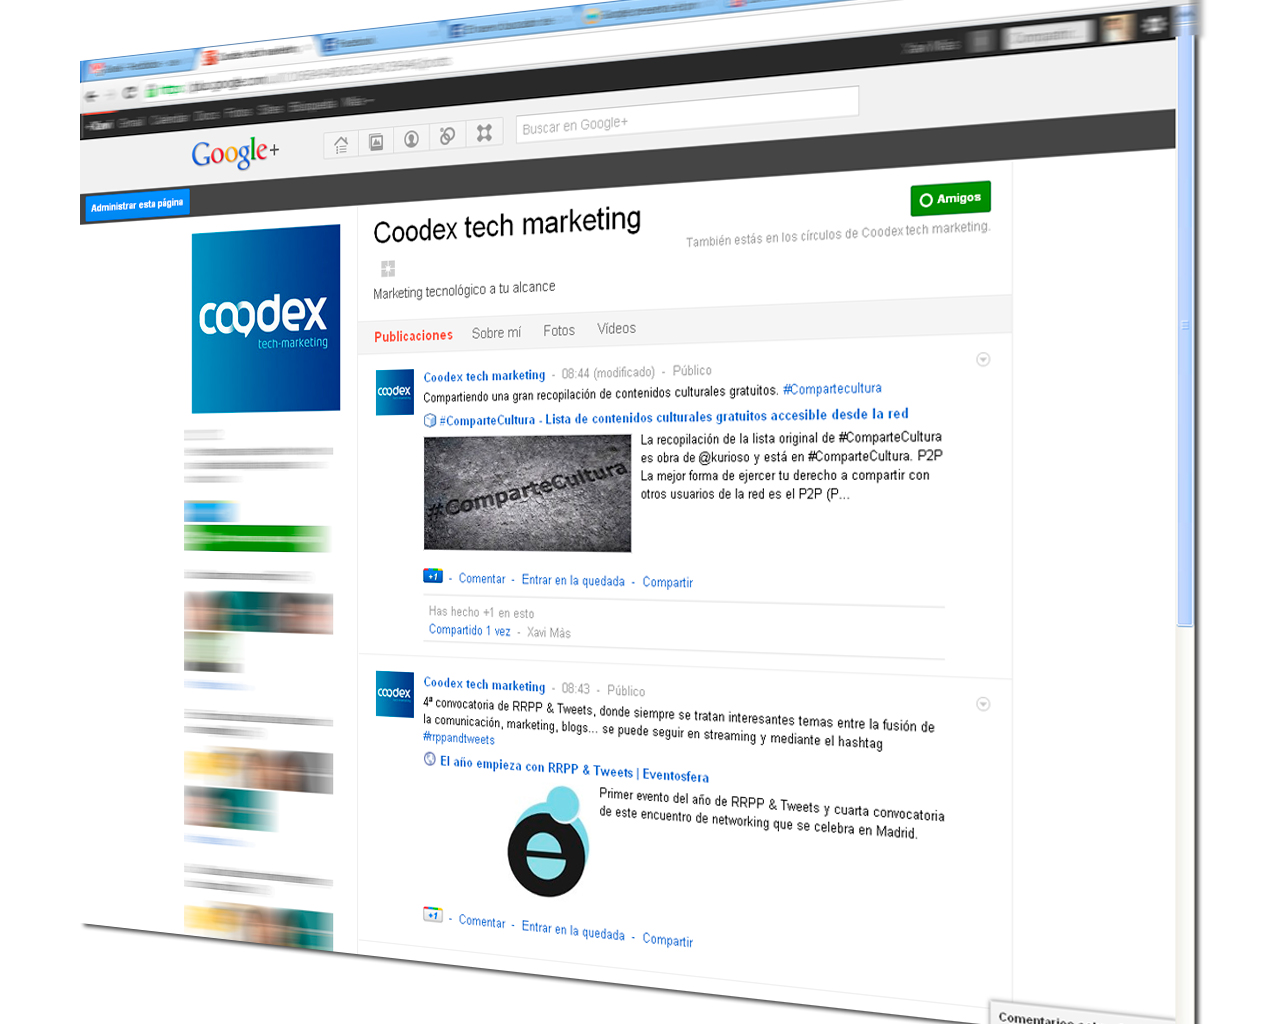 coodex tech marketing google plus1 1 - Posicionamiento web: Google muestra resultados de entradas en Google+